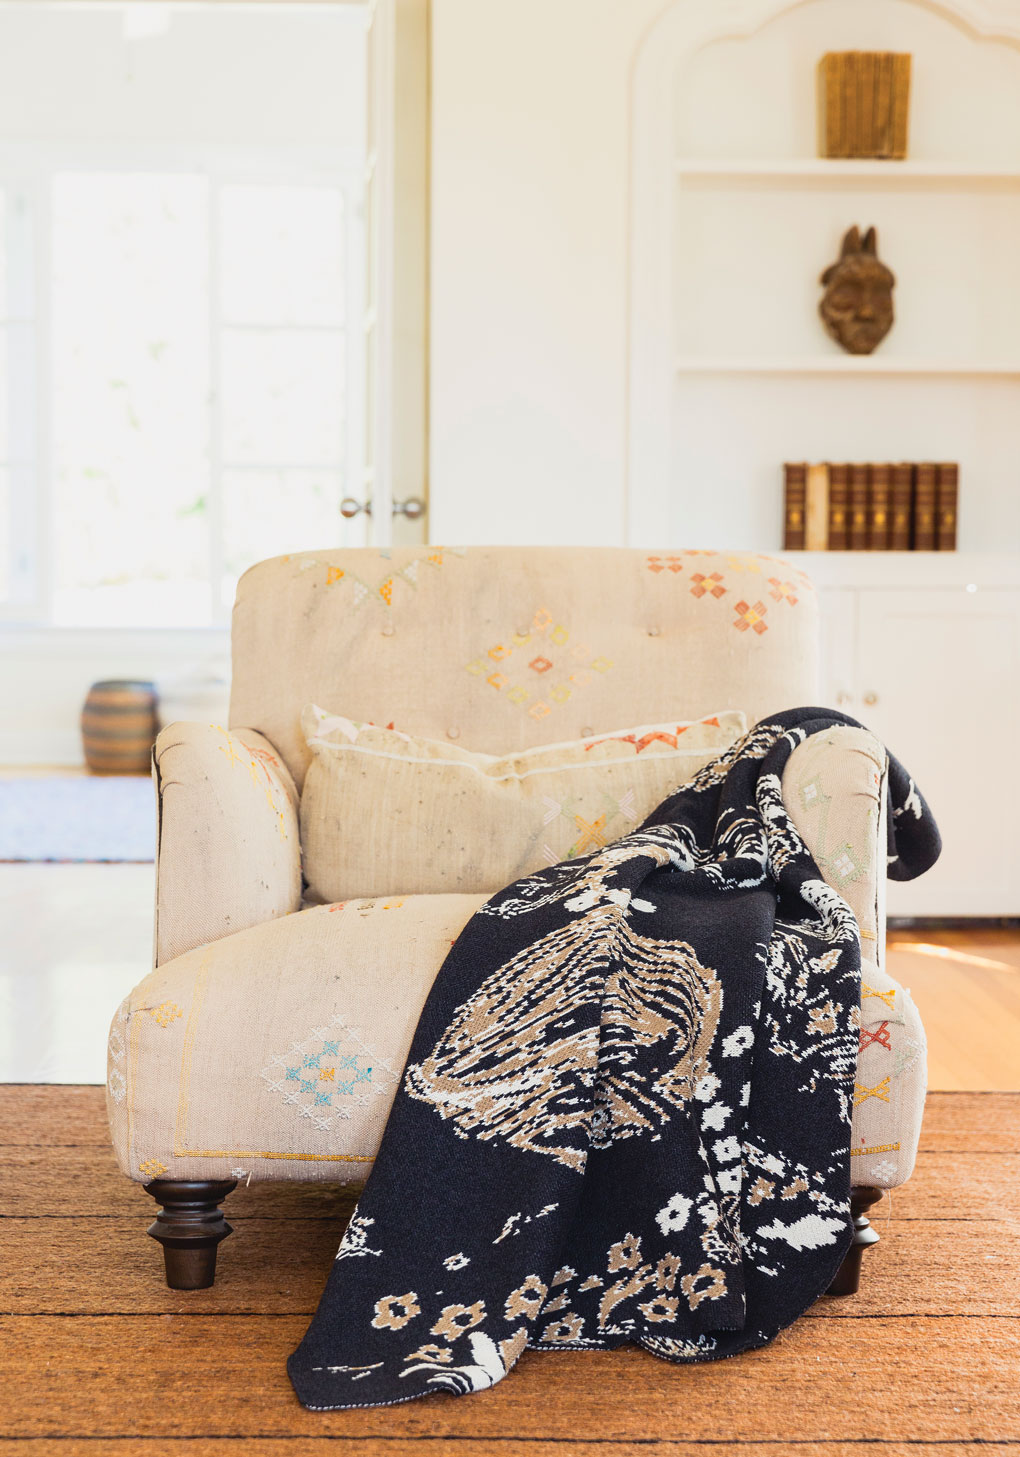 Antique looking armchair featuring a bold printed throw blanket resting over the arm.